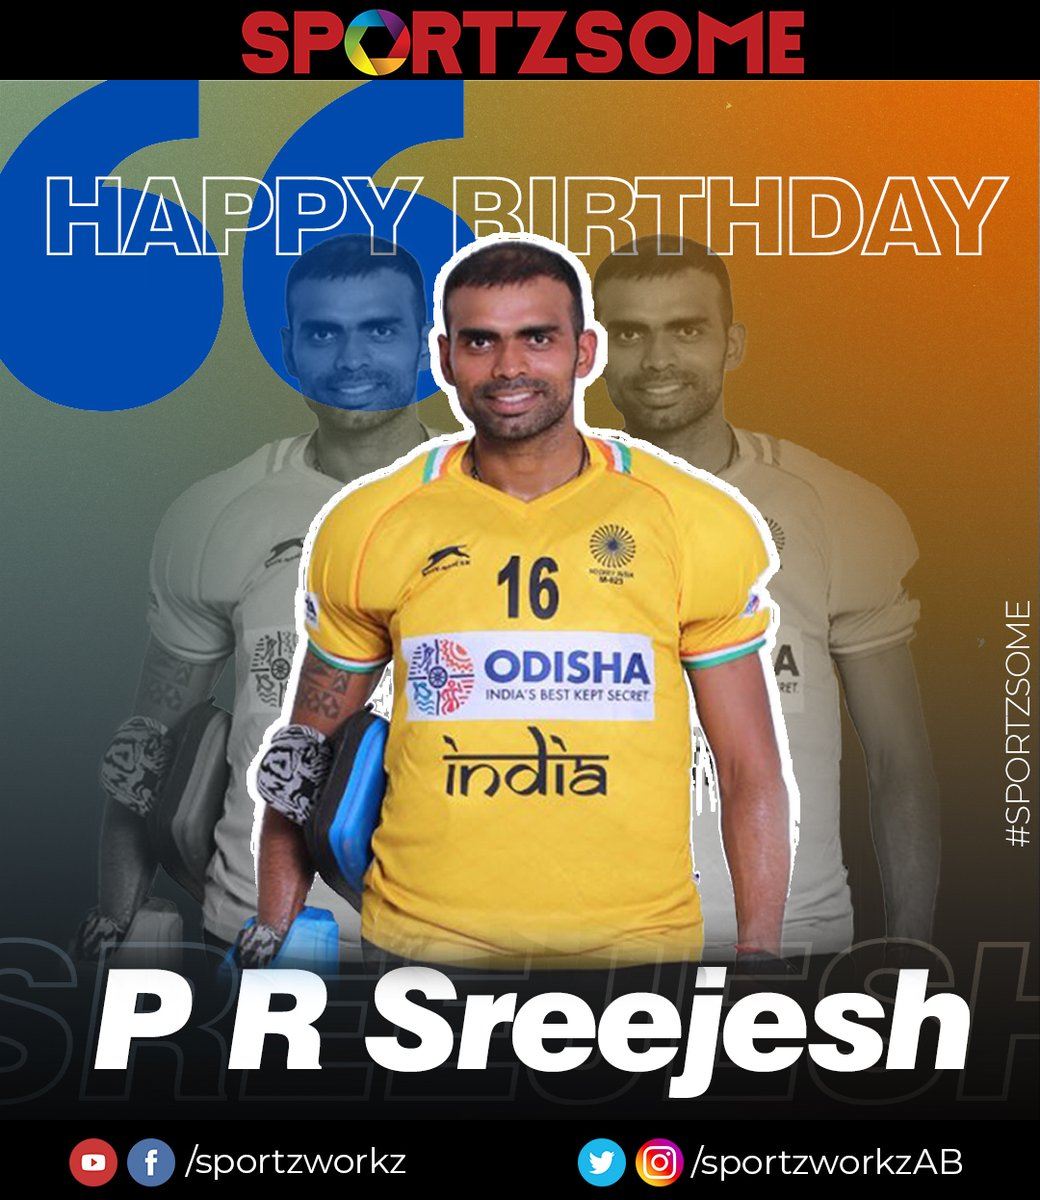 Best wishes to the former captain and senior goalkeeper of Indian national Hockey team. @16Sreejesh   - Team Sportzworkz #IndiaKaGame #Hockey<br>http://pic.twitter.com/5OHMRsnQg5